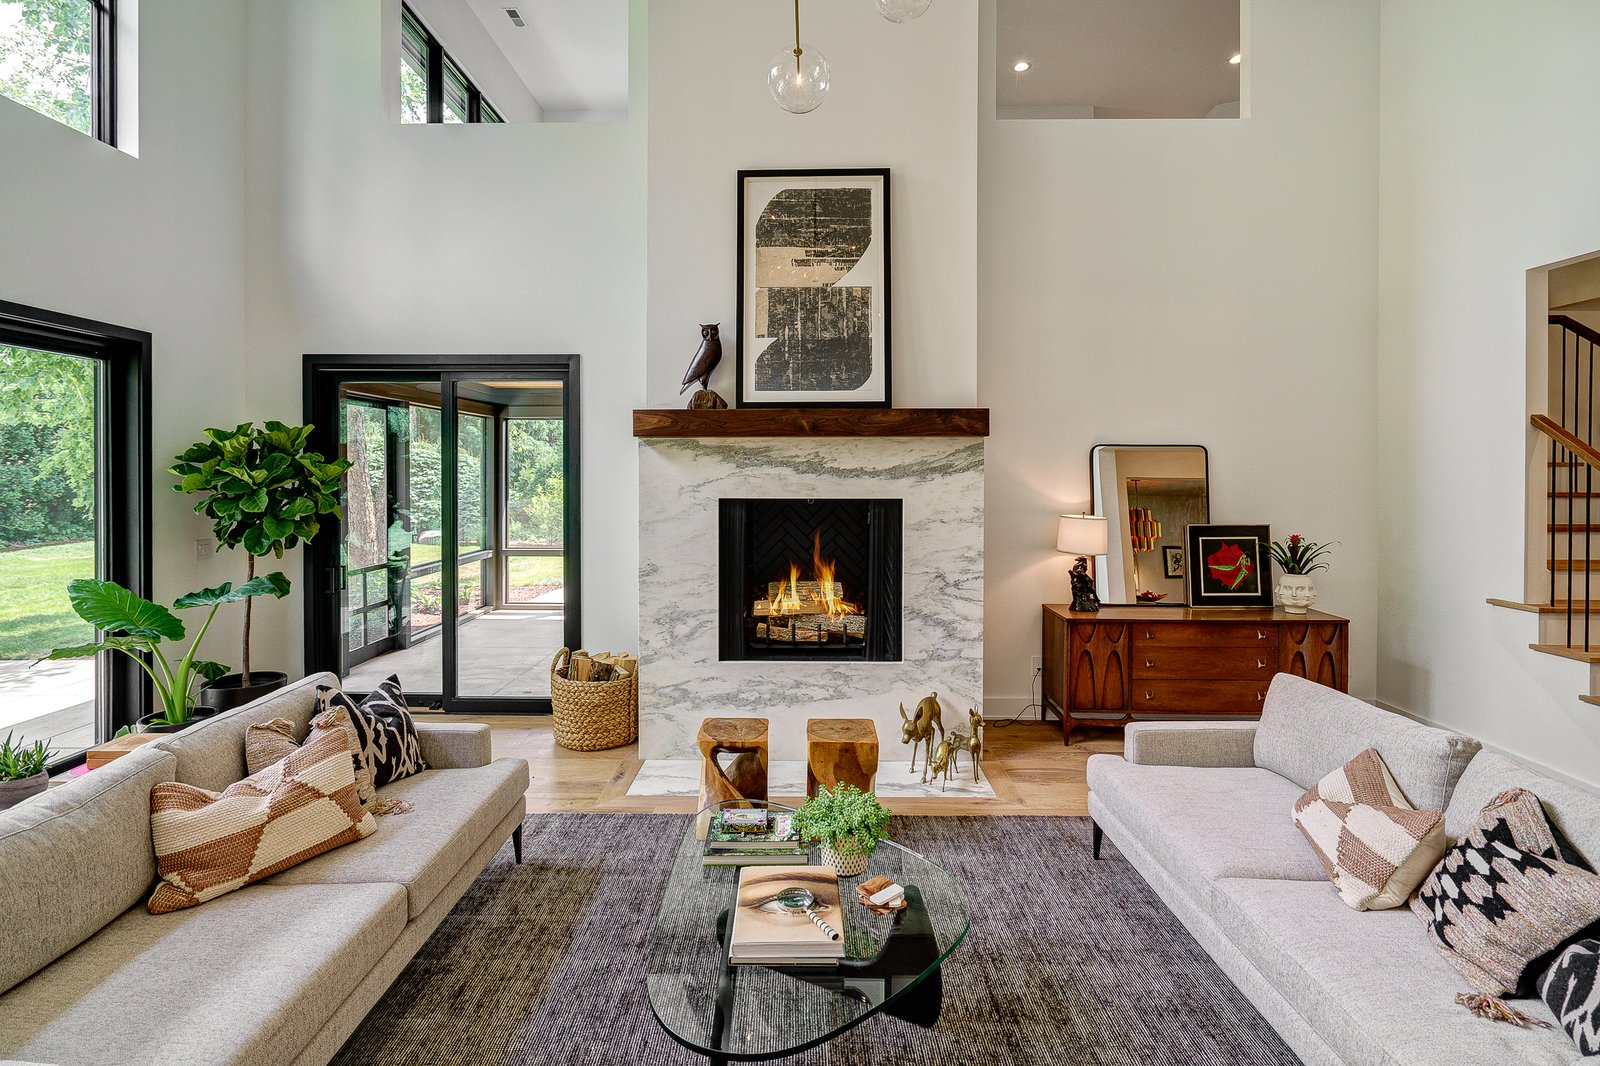 Living Room, End Tables, Lamps, Table Lighting, Console Tables, Ottomans, Accent Lighting, Coffee Tables, Sofa, Gas Burning Fireplace, Light Hardwood Floor, Standard Layout Fireplace, Ceiling Lighting, and Stools Dorchester Interior Great Room  The Dorchester Project by  Paul + Jo Studio